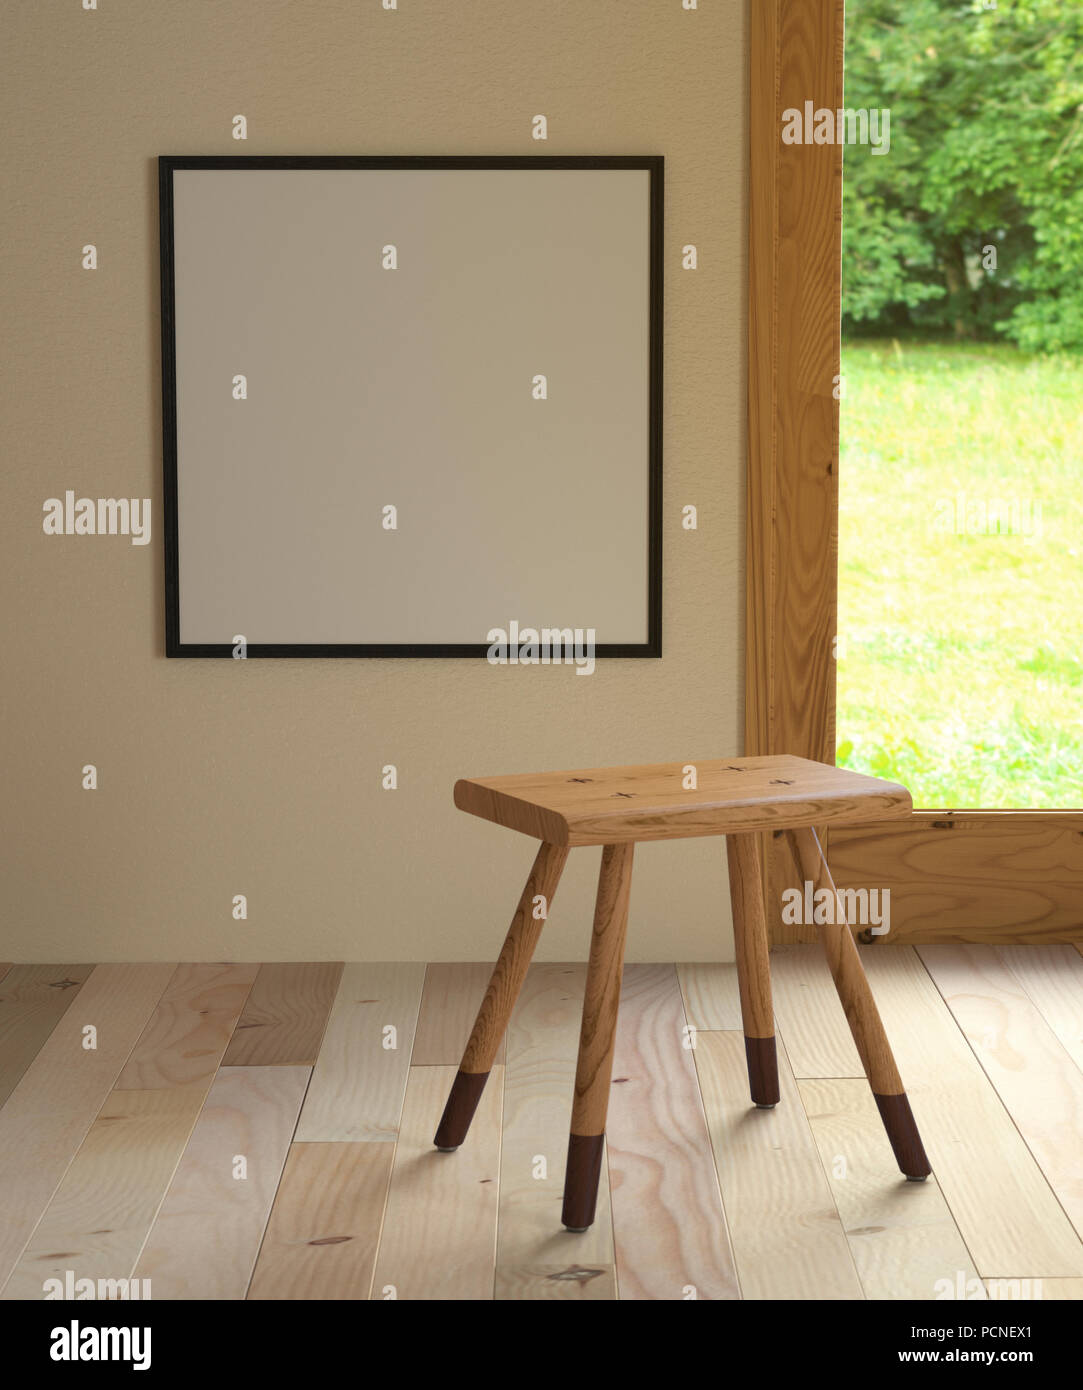 3d illustration interior. Mockup a square poster 56 x 56 cm inside building. Room with wooden floor and window overlooking the nature. Backless stool  - Stock Image